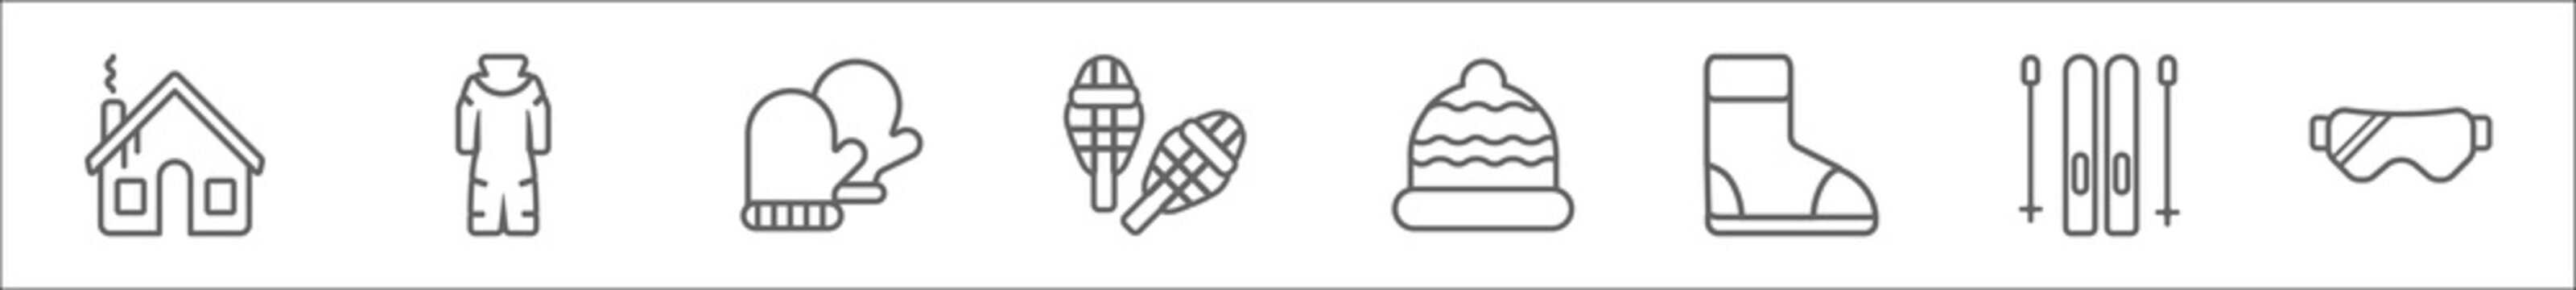 outline set of winter line icons. linear vector icons such as winter cabin, snowsuit, mittens, snowshoes, winter cap, boots, ski equiptment, snow goggle